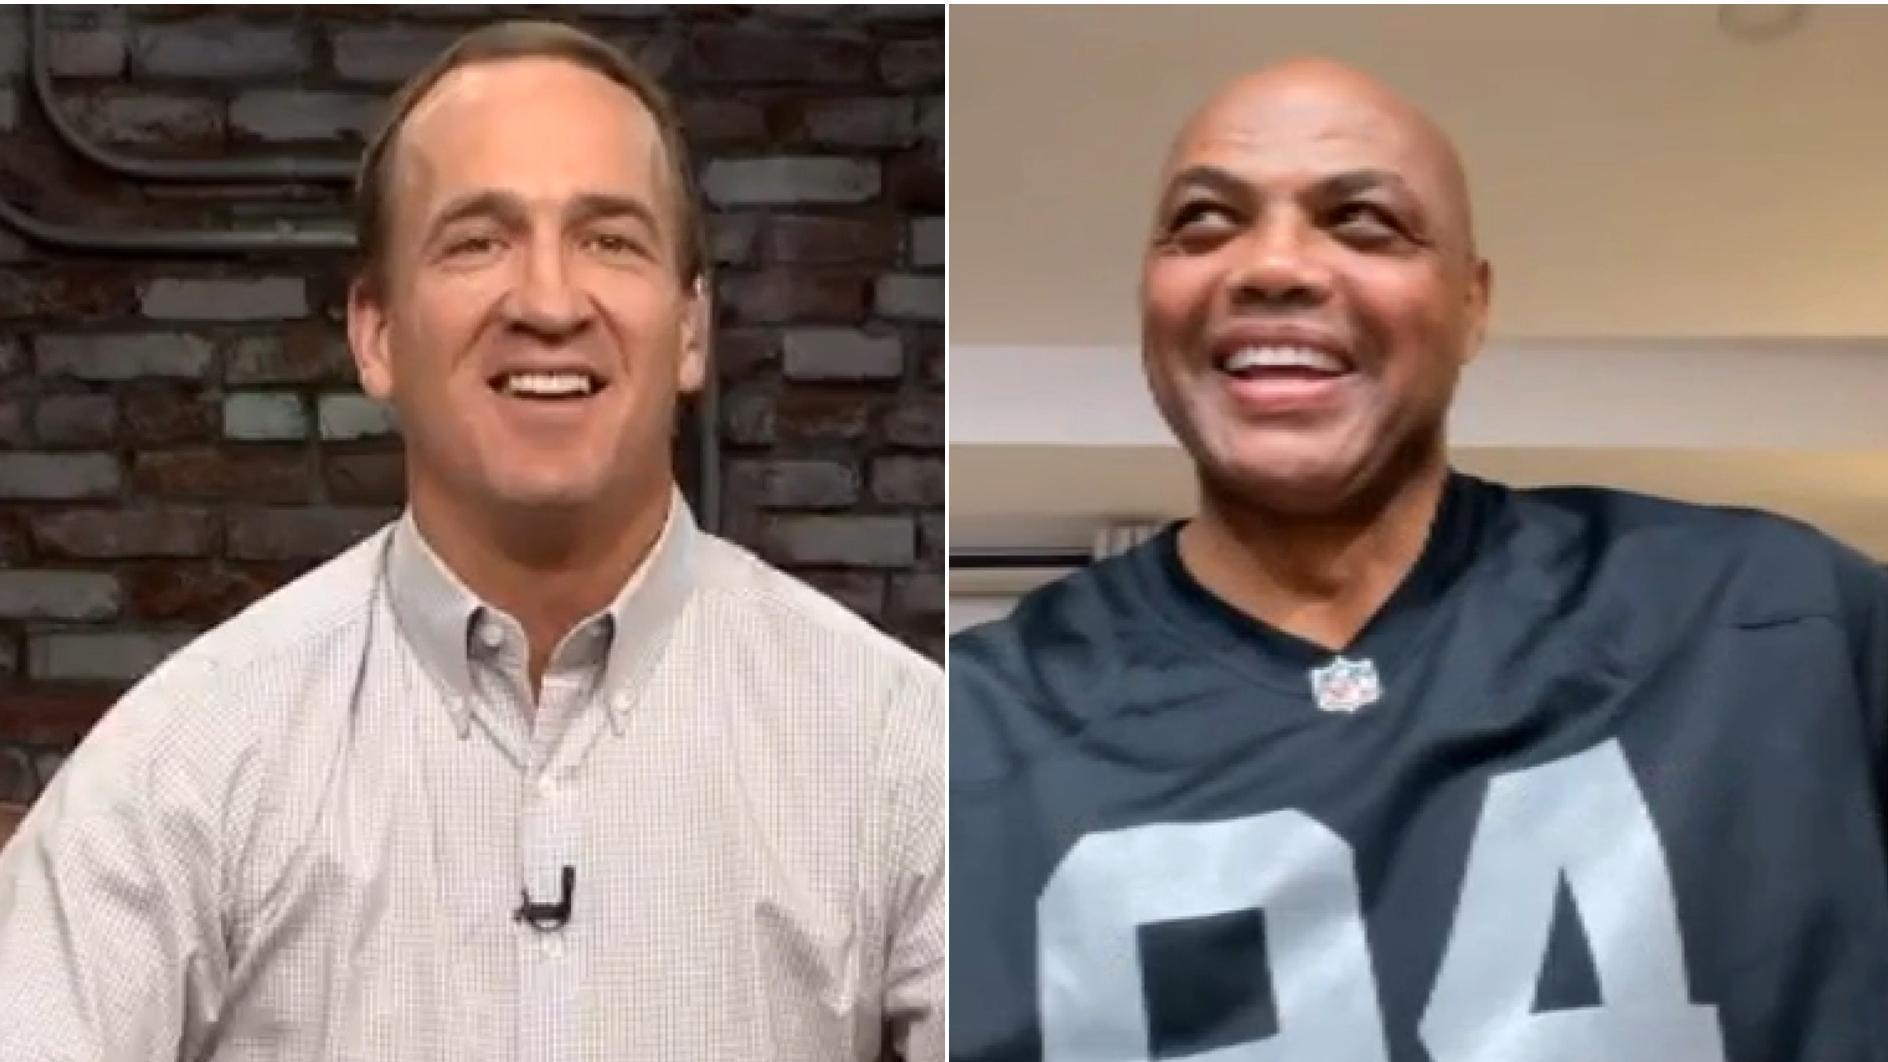 Charles Barkley reveals to Peyton and Eli why he didn't play football